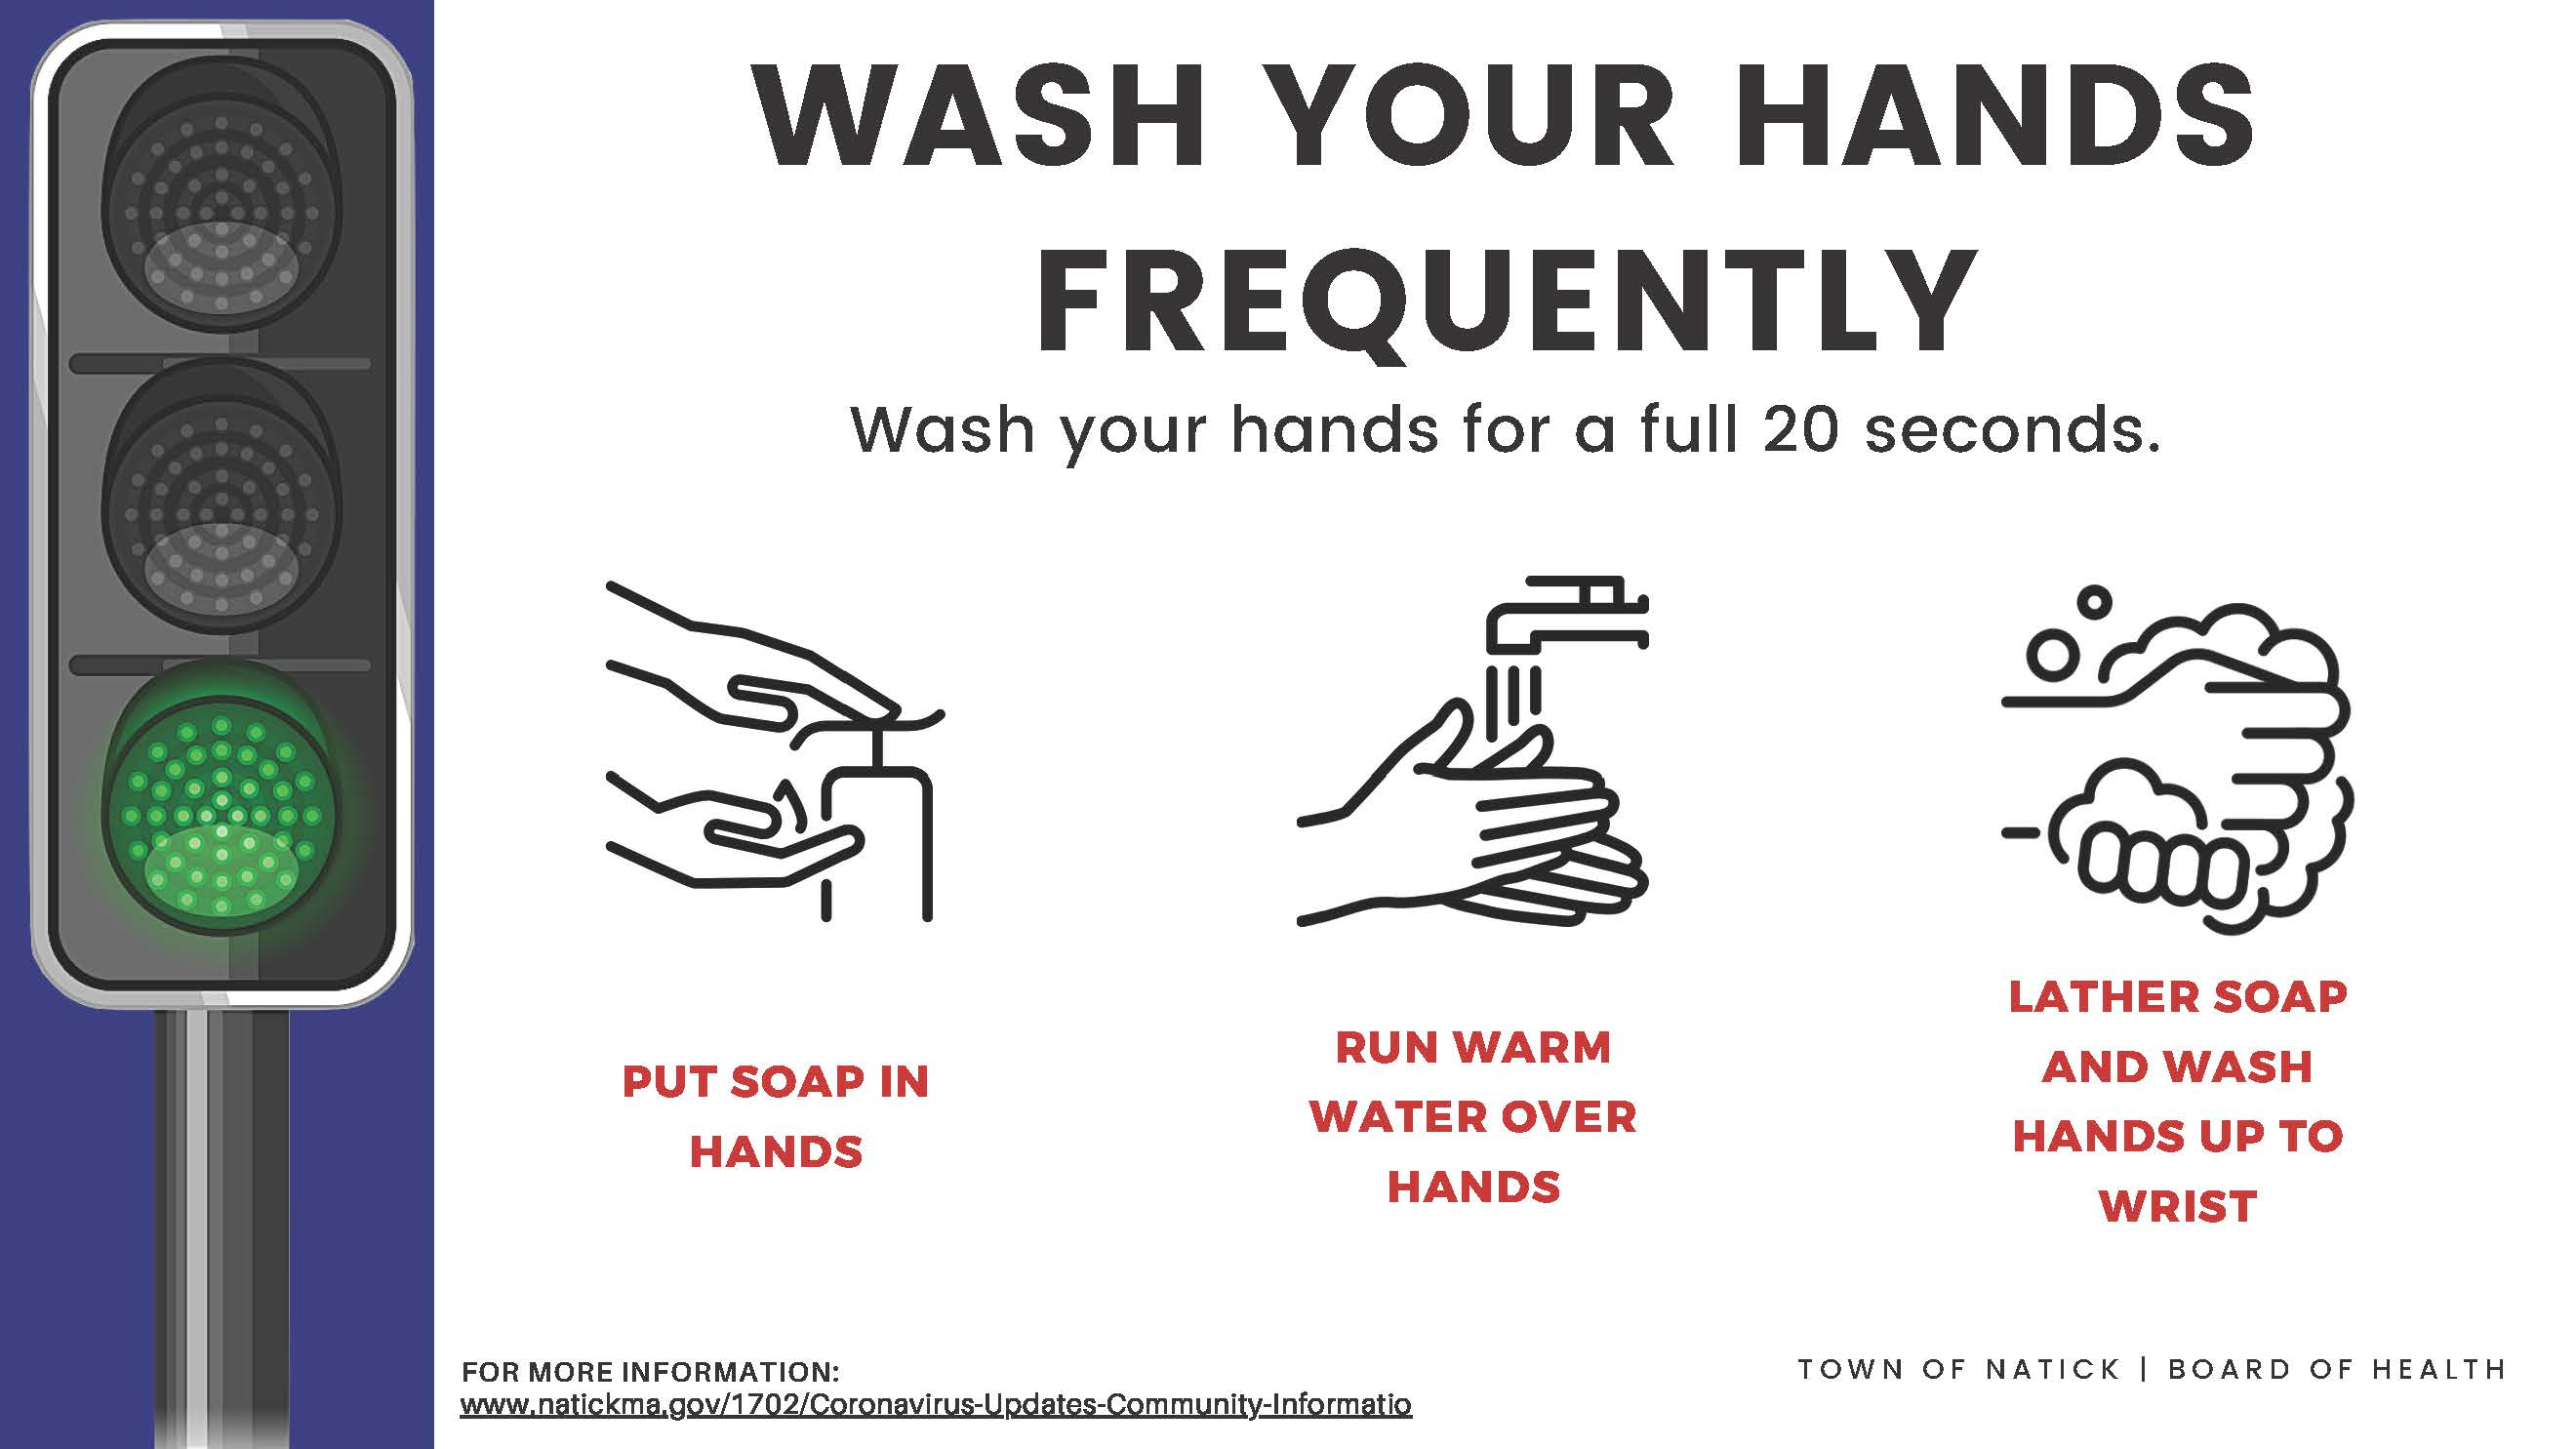 Wash your hands frequently (Corrugated plastic) Outdoor Sign